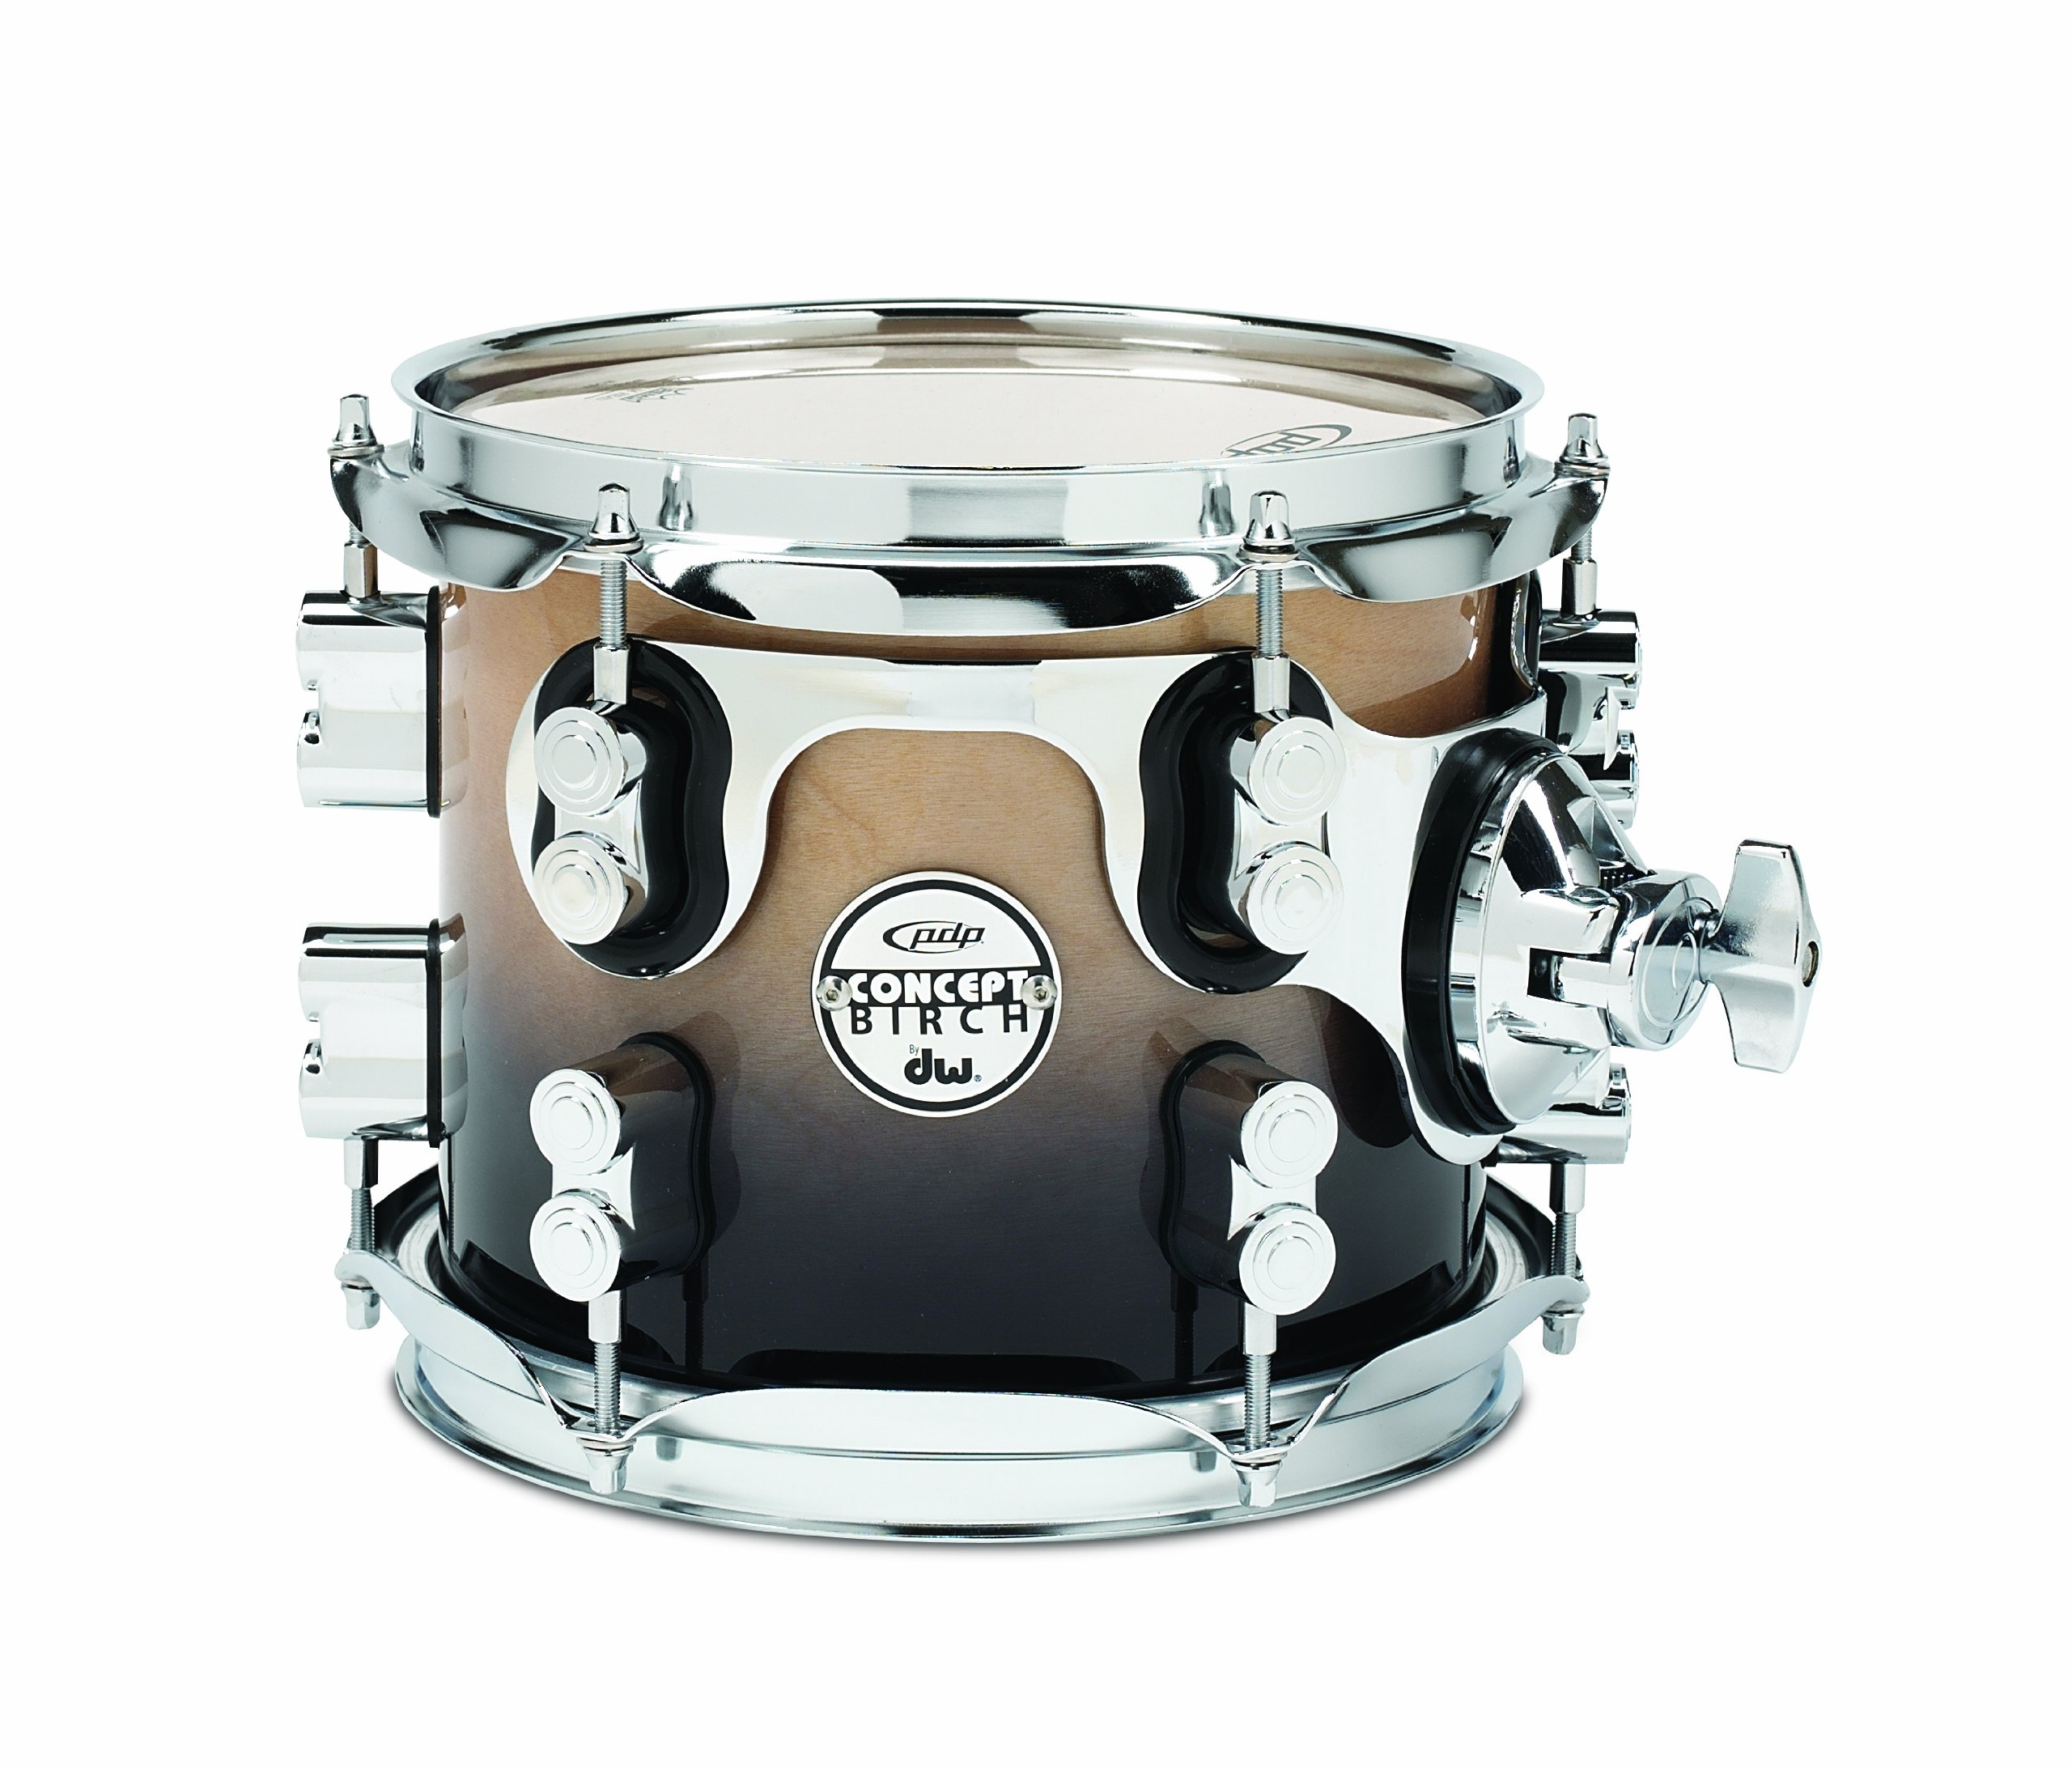 Pacific Drums PDCB0708STNC 7 x 8 Inches Tom with Chrome Hardware - Natural to Charcoal Fade by Pacific Drums